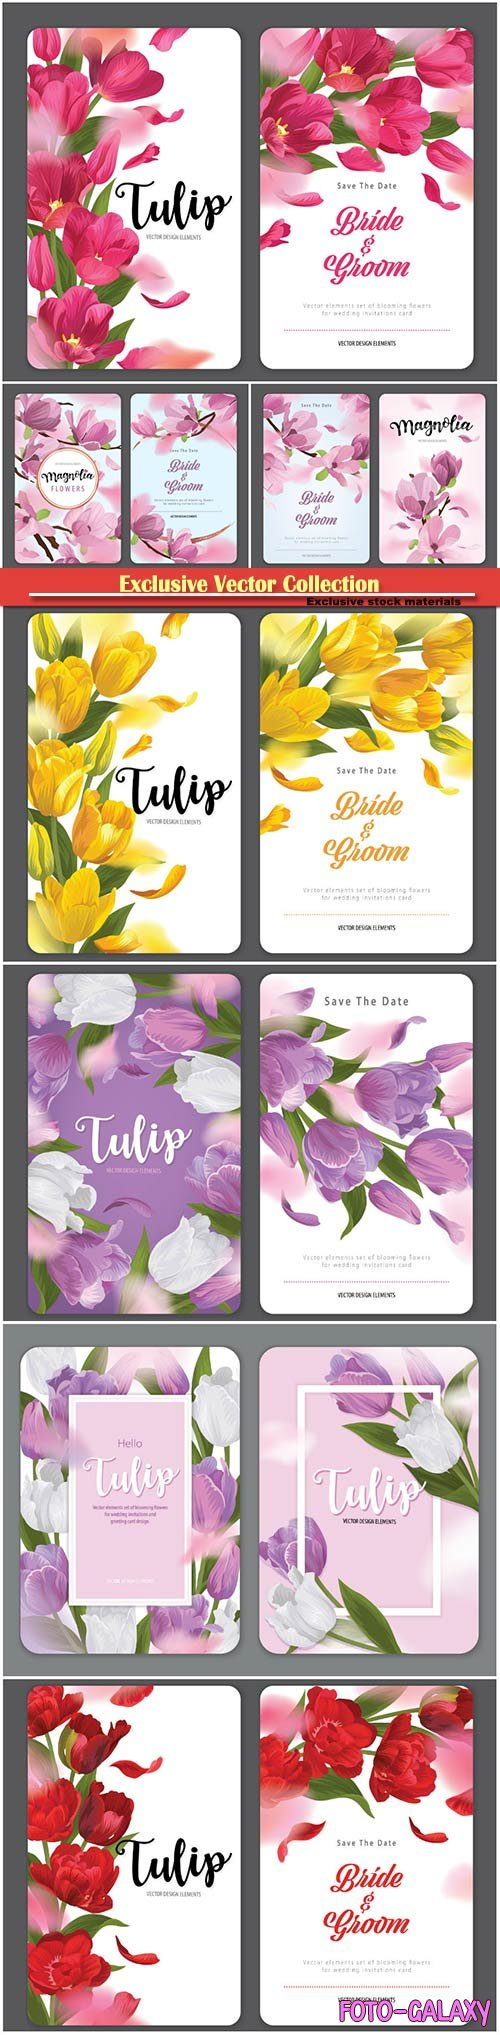 Vector elements set of flowers for wedding invitations card